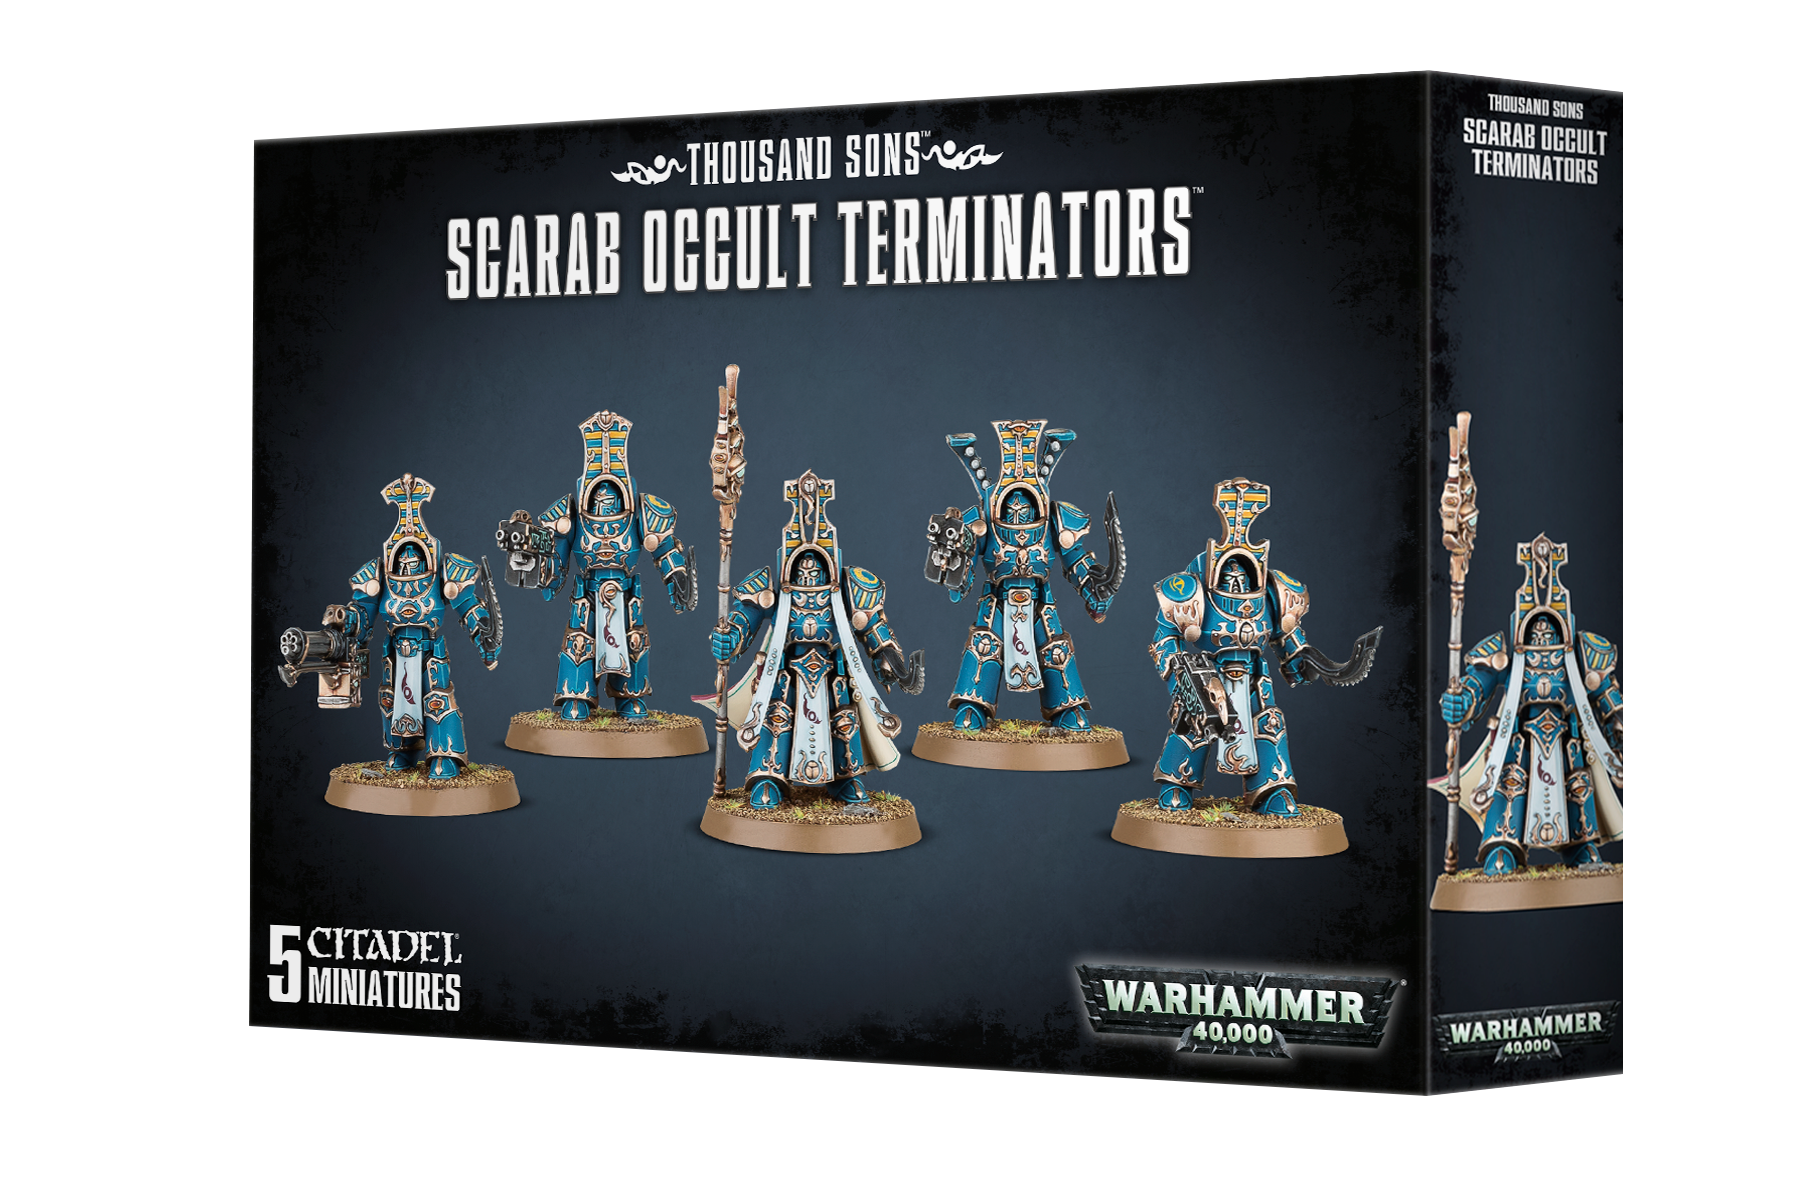 Scarab Occult Terminators Chaos Thousand Sons